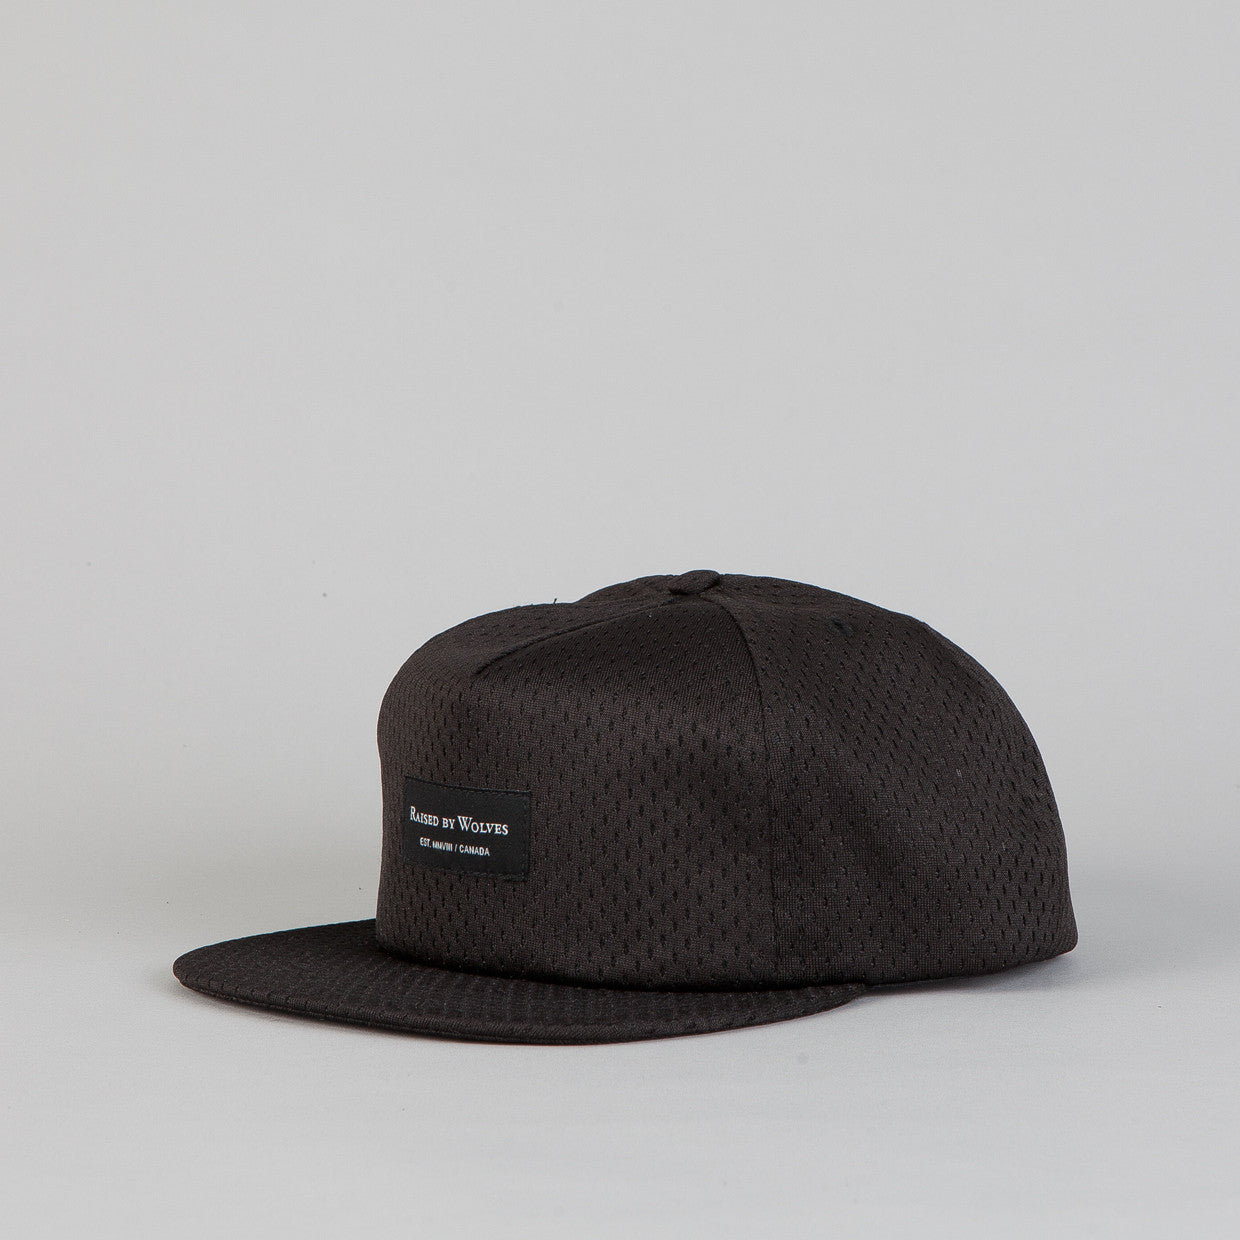 Raised By Wolves Richmond Snapback Cap Pro-Style Mesh Black